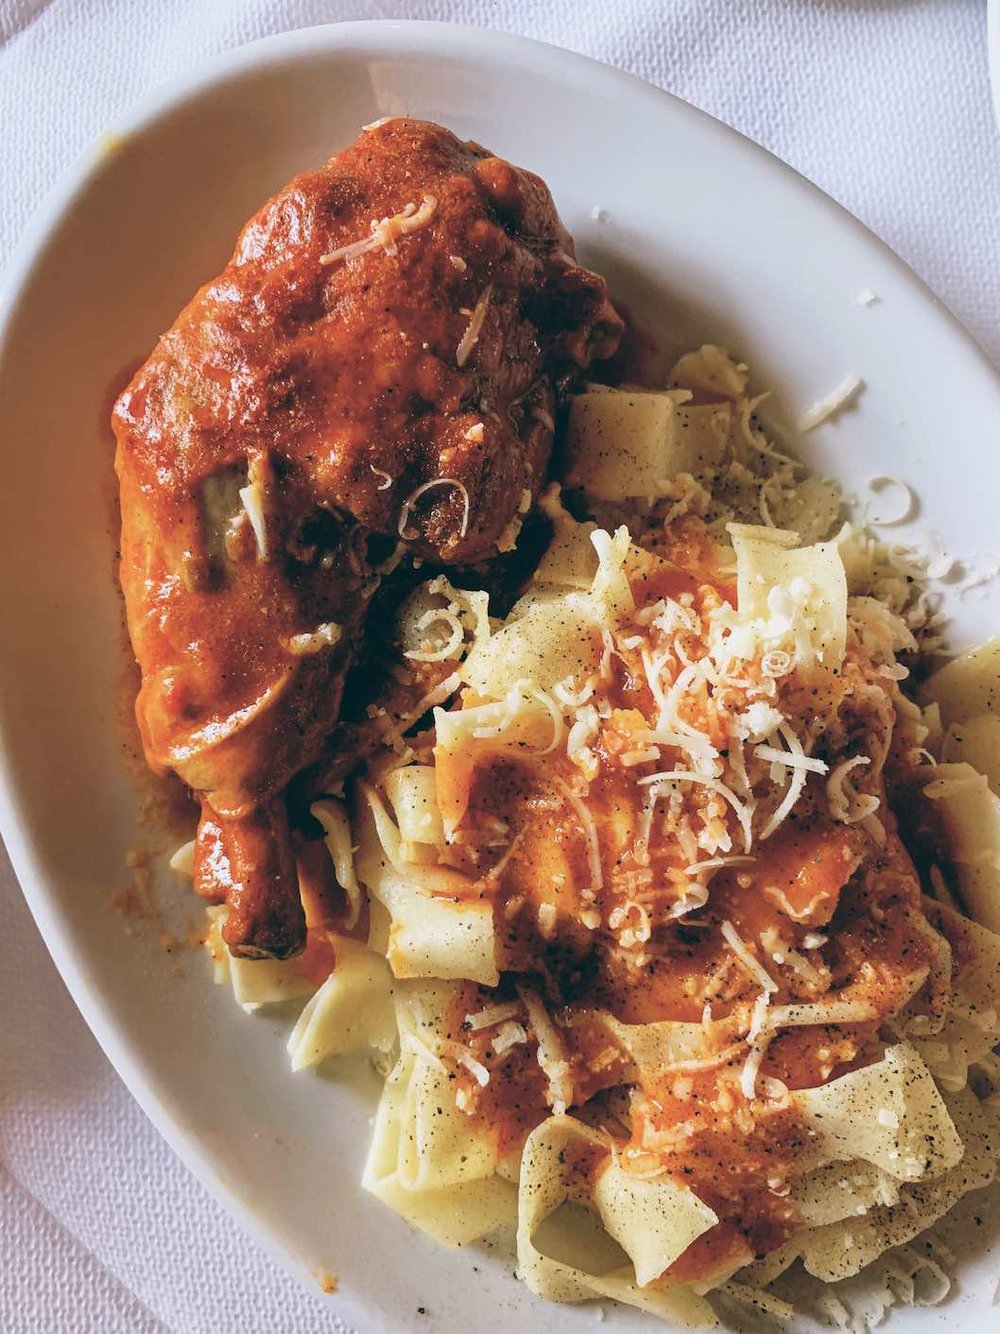 Rooster in red sauce with hylopittes